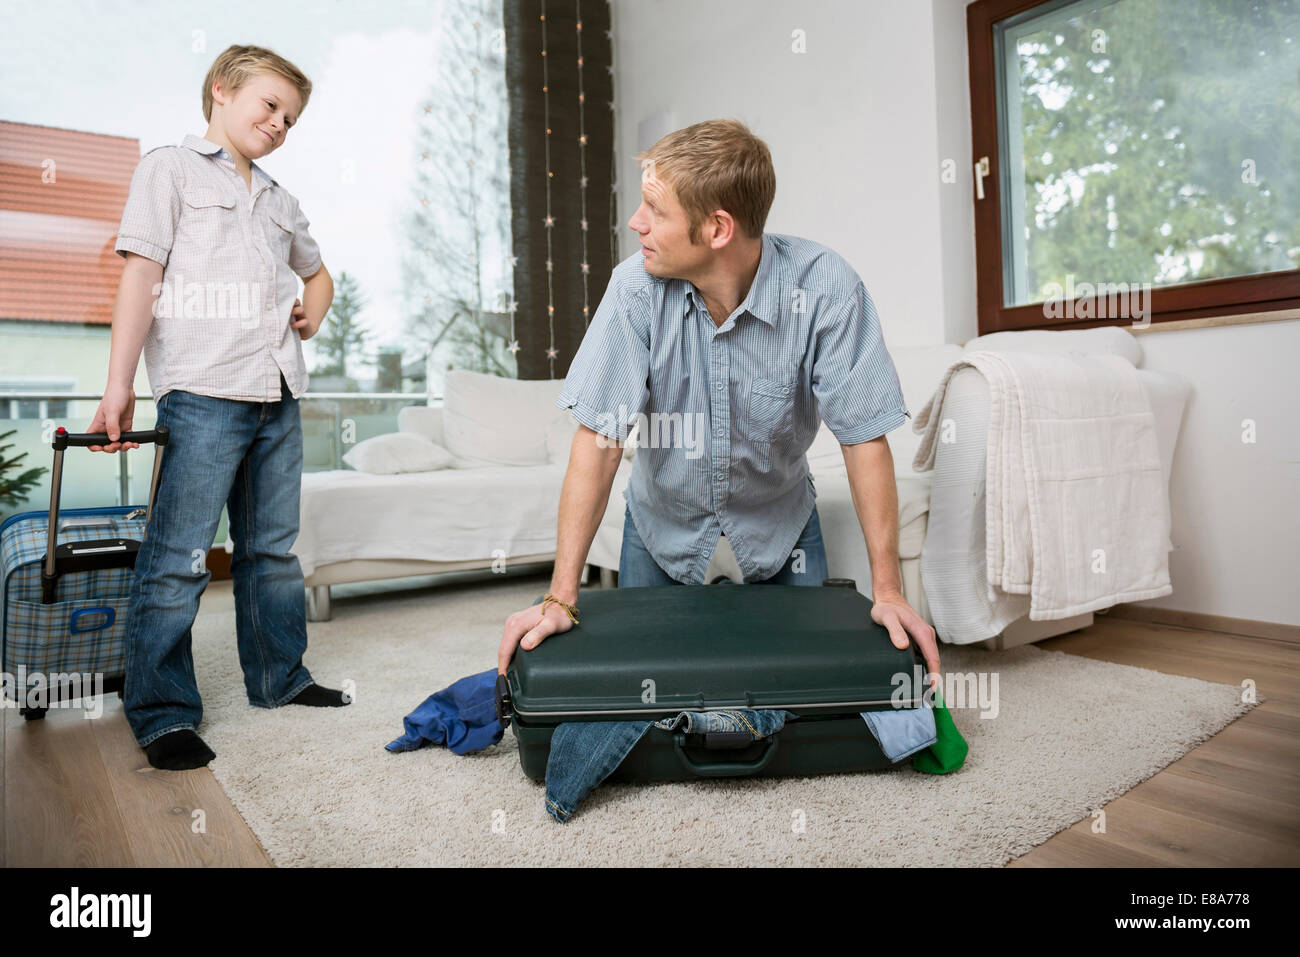 Father and son packing suitcase - Stock Image